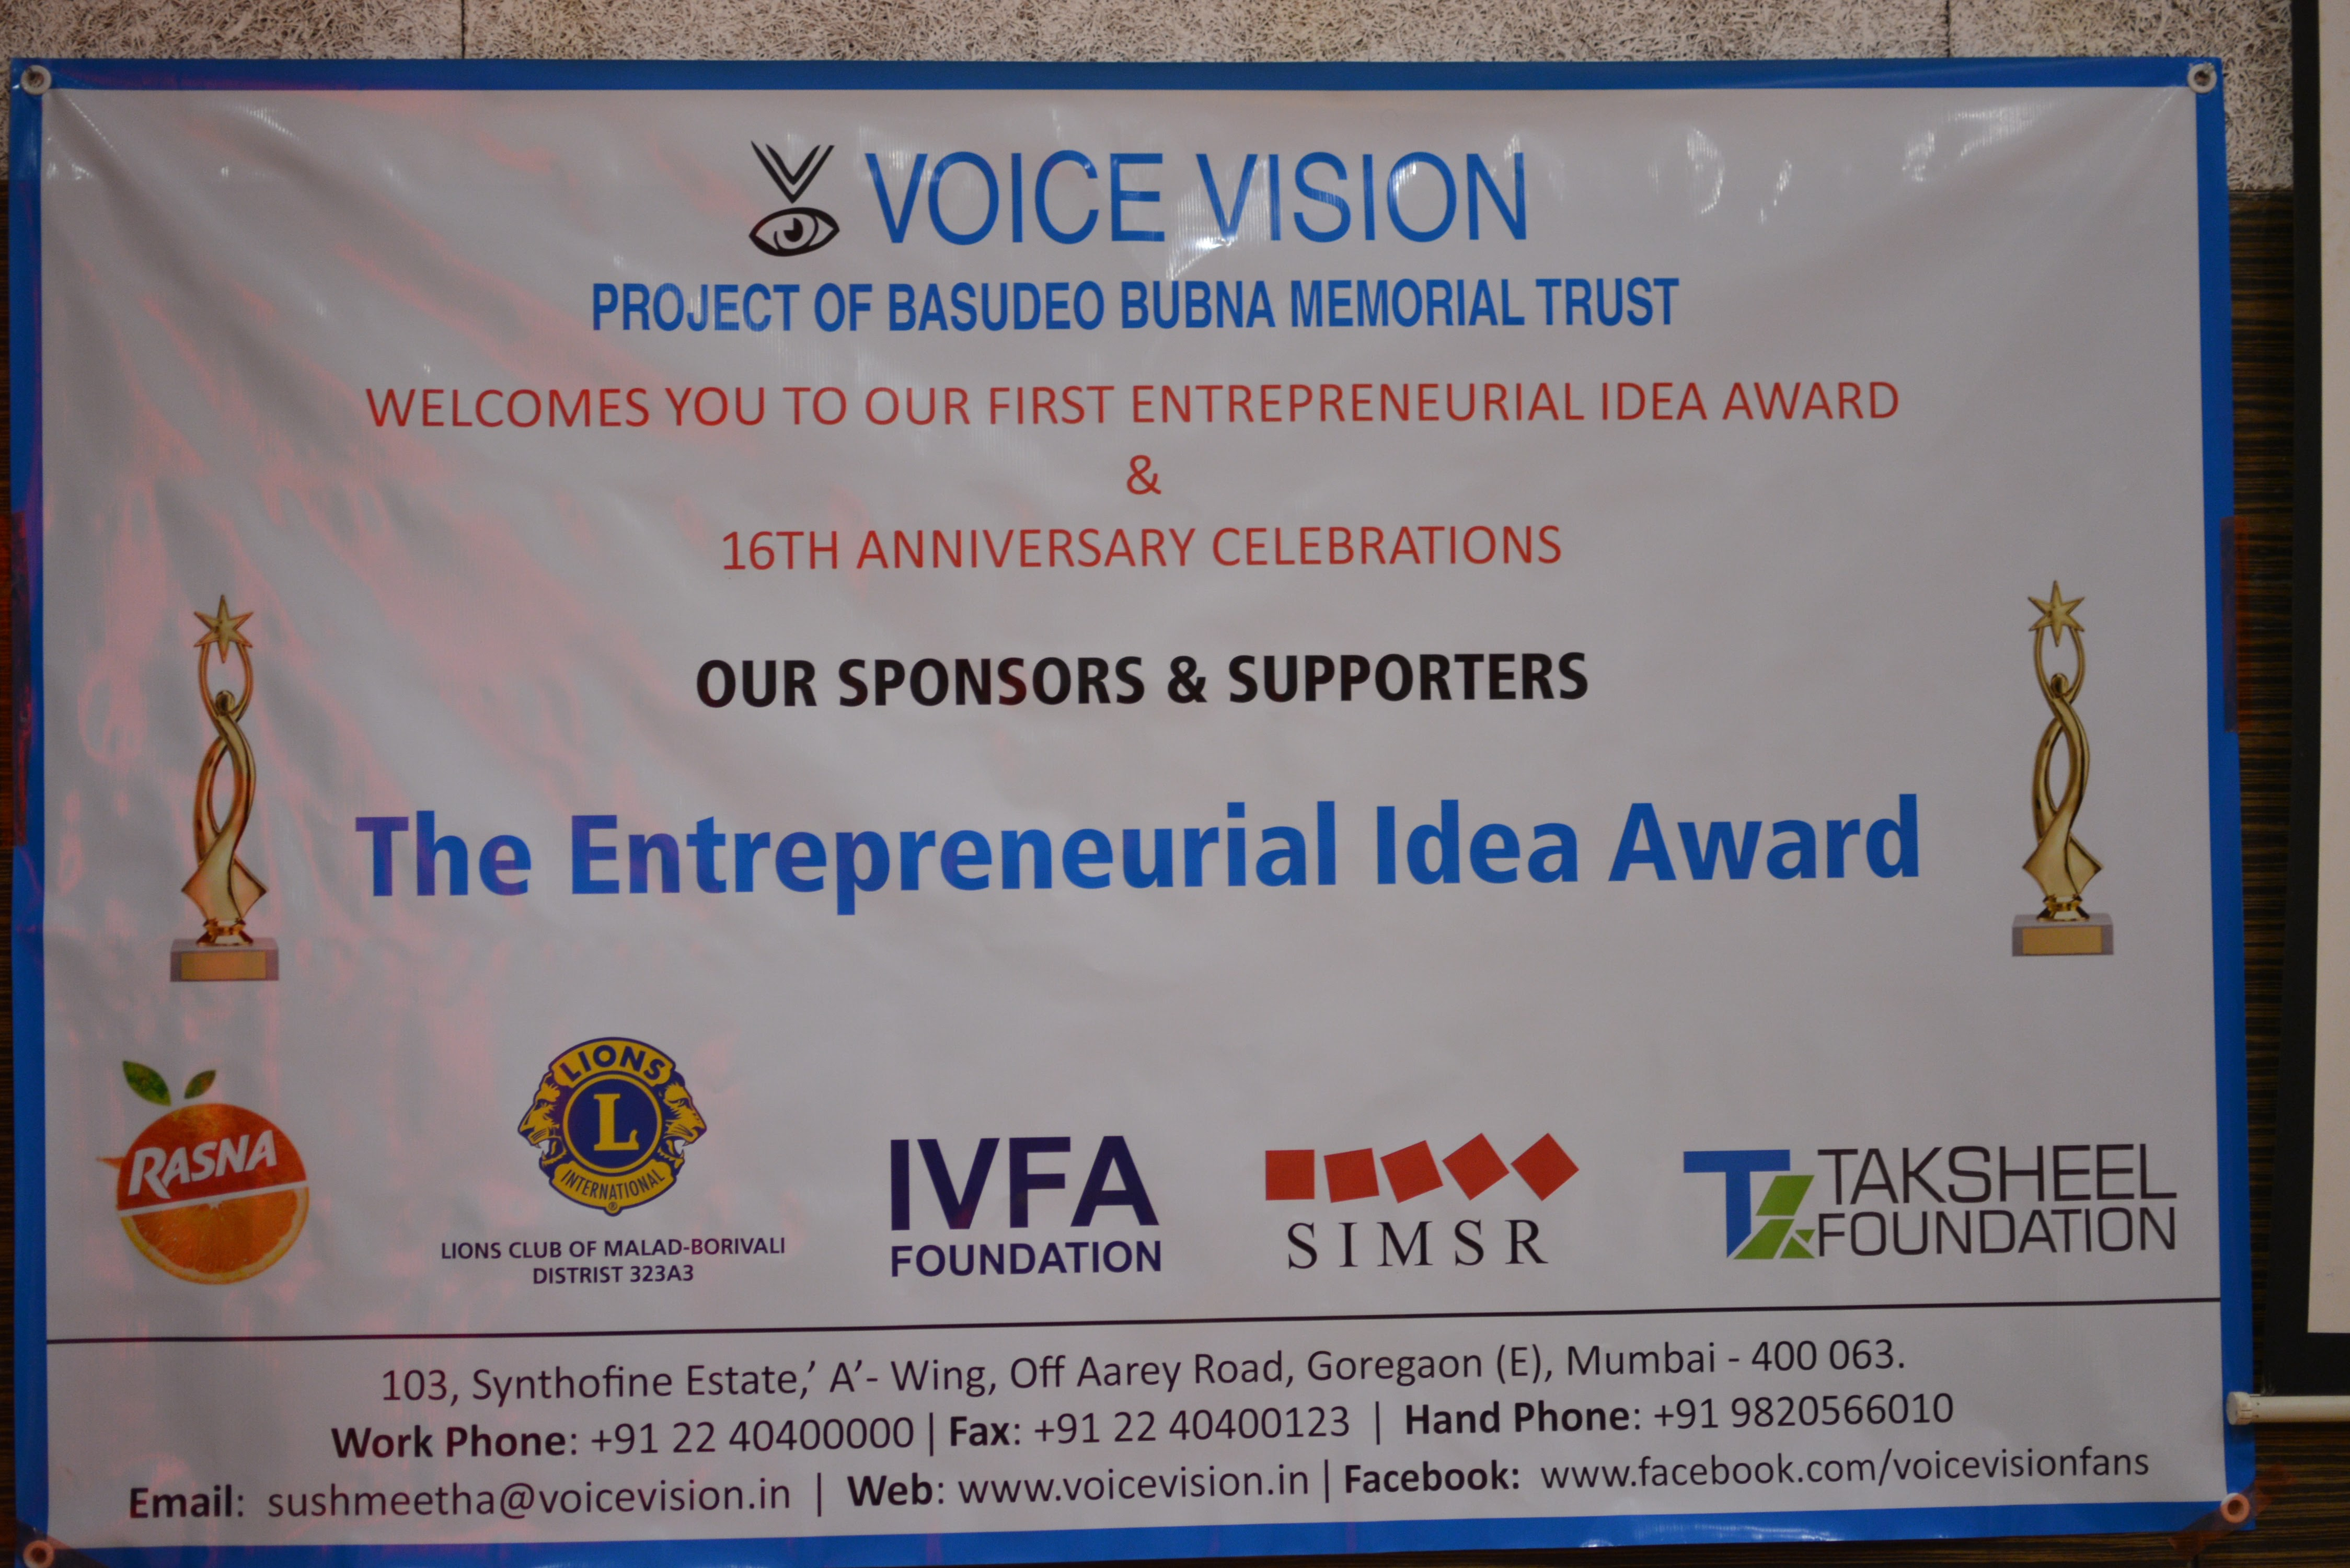 a picture of event banner with logos of sponsors such as Fanta, Taksheel foundation etc